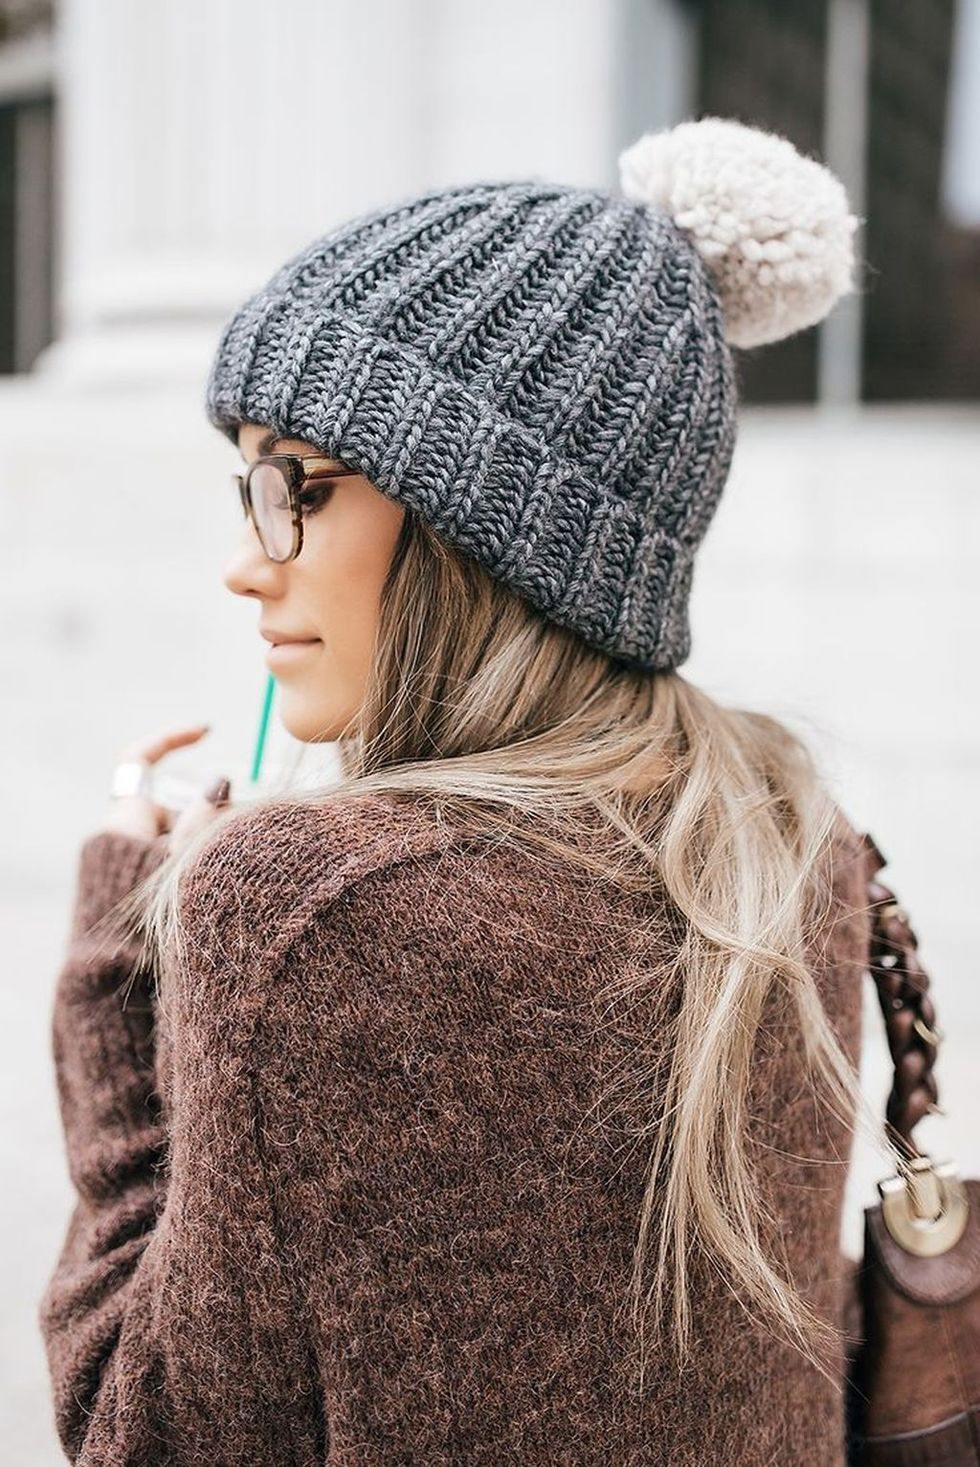 Fashionable Women Hats For Winter And Snow Outfits 4